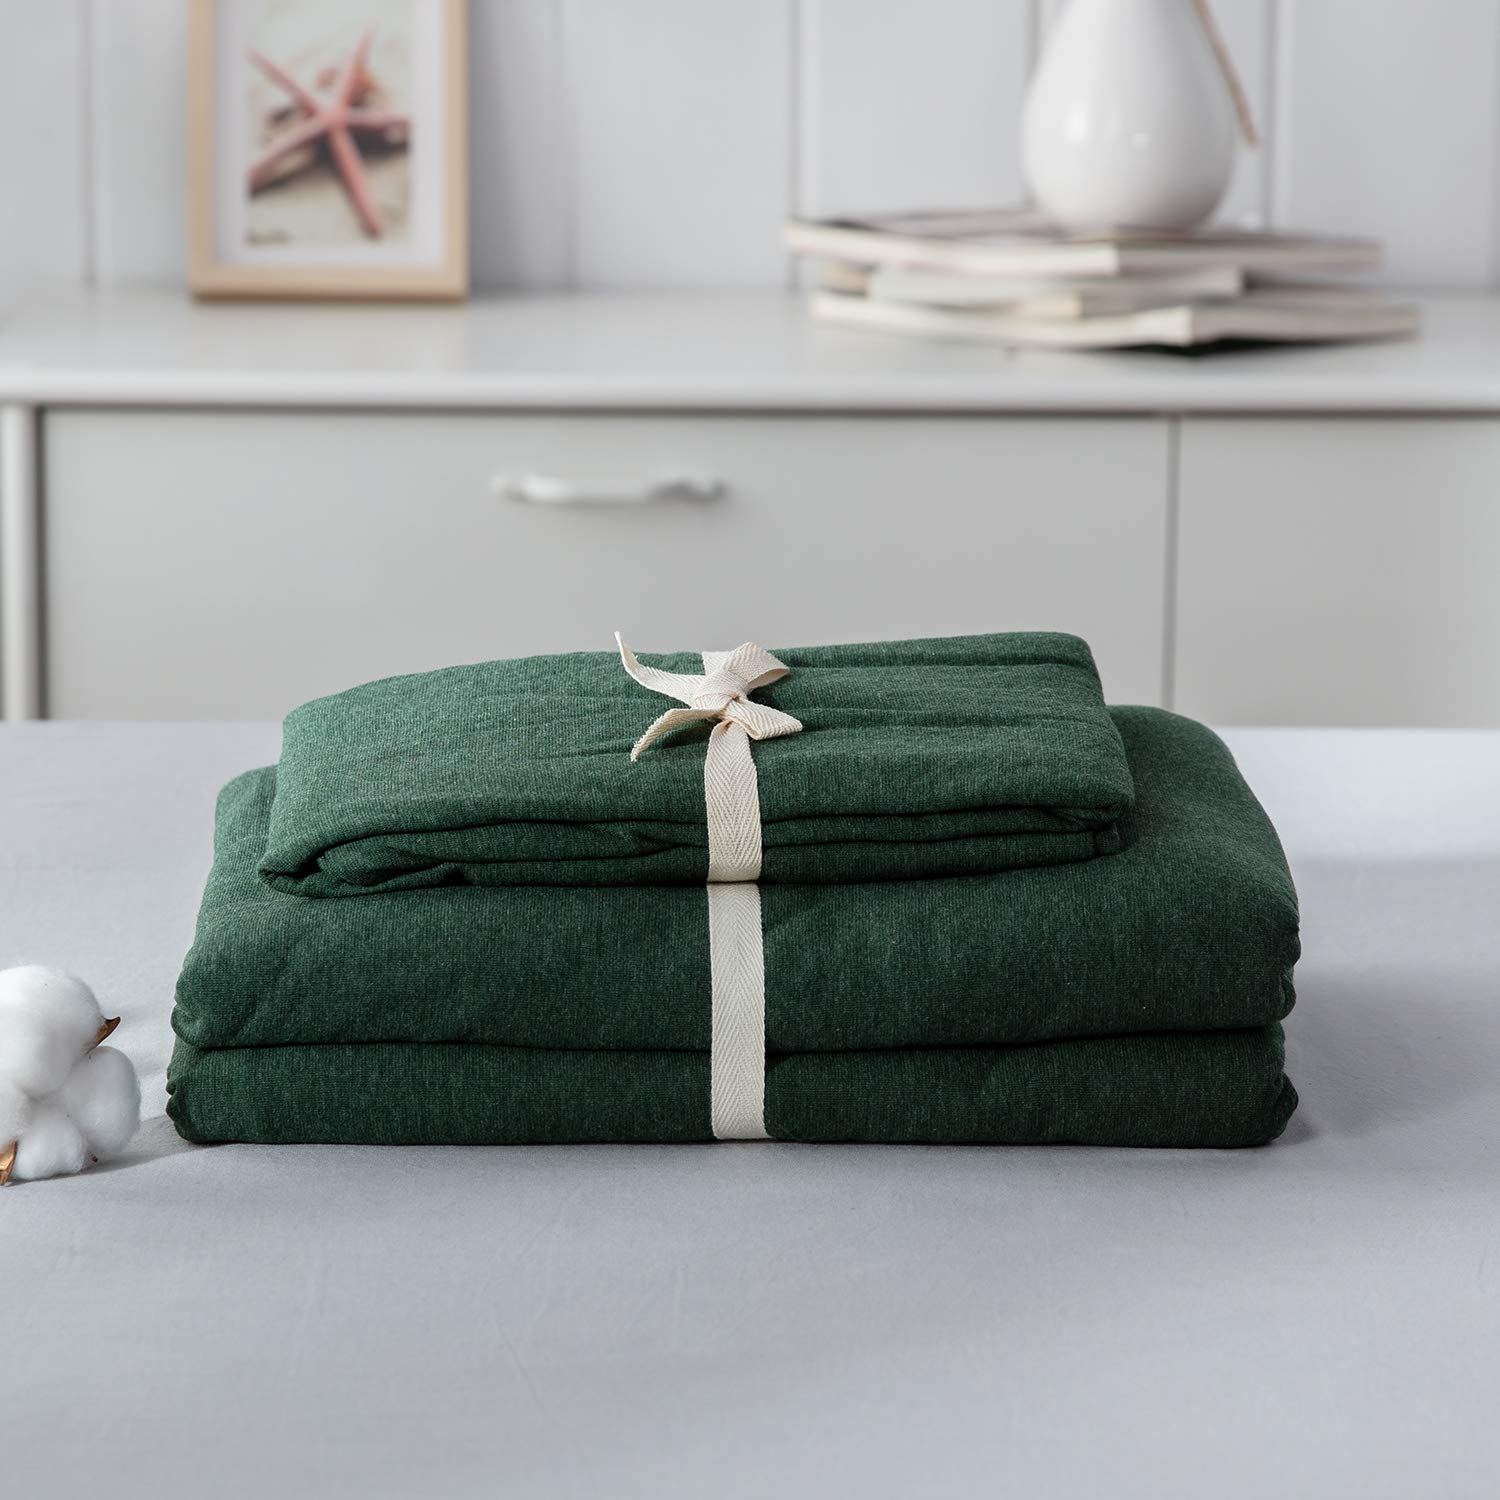 LIFETOWN Green Duvet Cover, Jersey Knit Cotton Duvet Cover Set 3 Pieces, Simple Solid Design, Super Soft and Easy Care (Full/Queen, Dark Green) by LIFETOWN (Image #8)